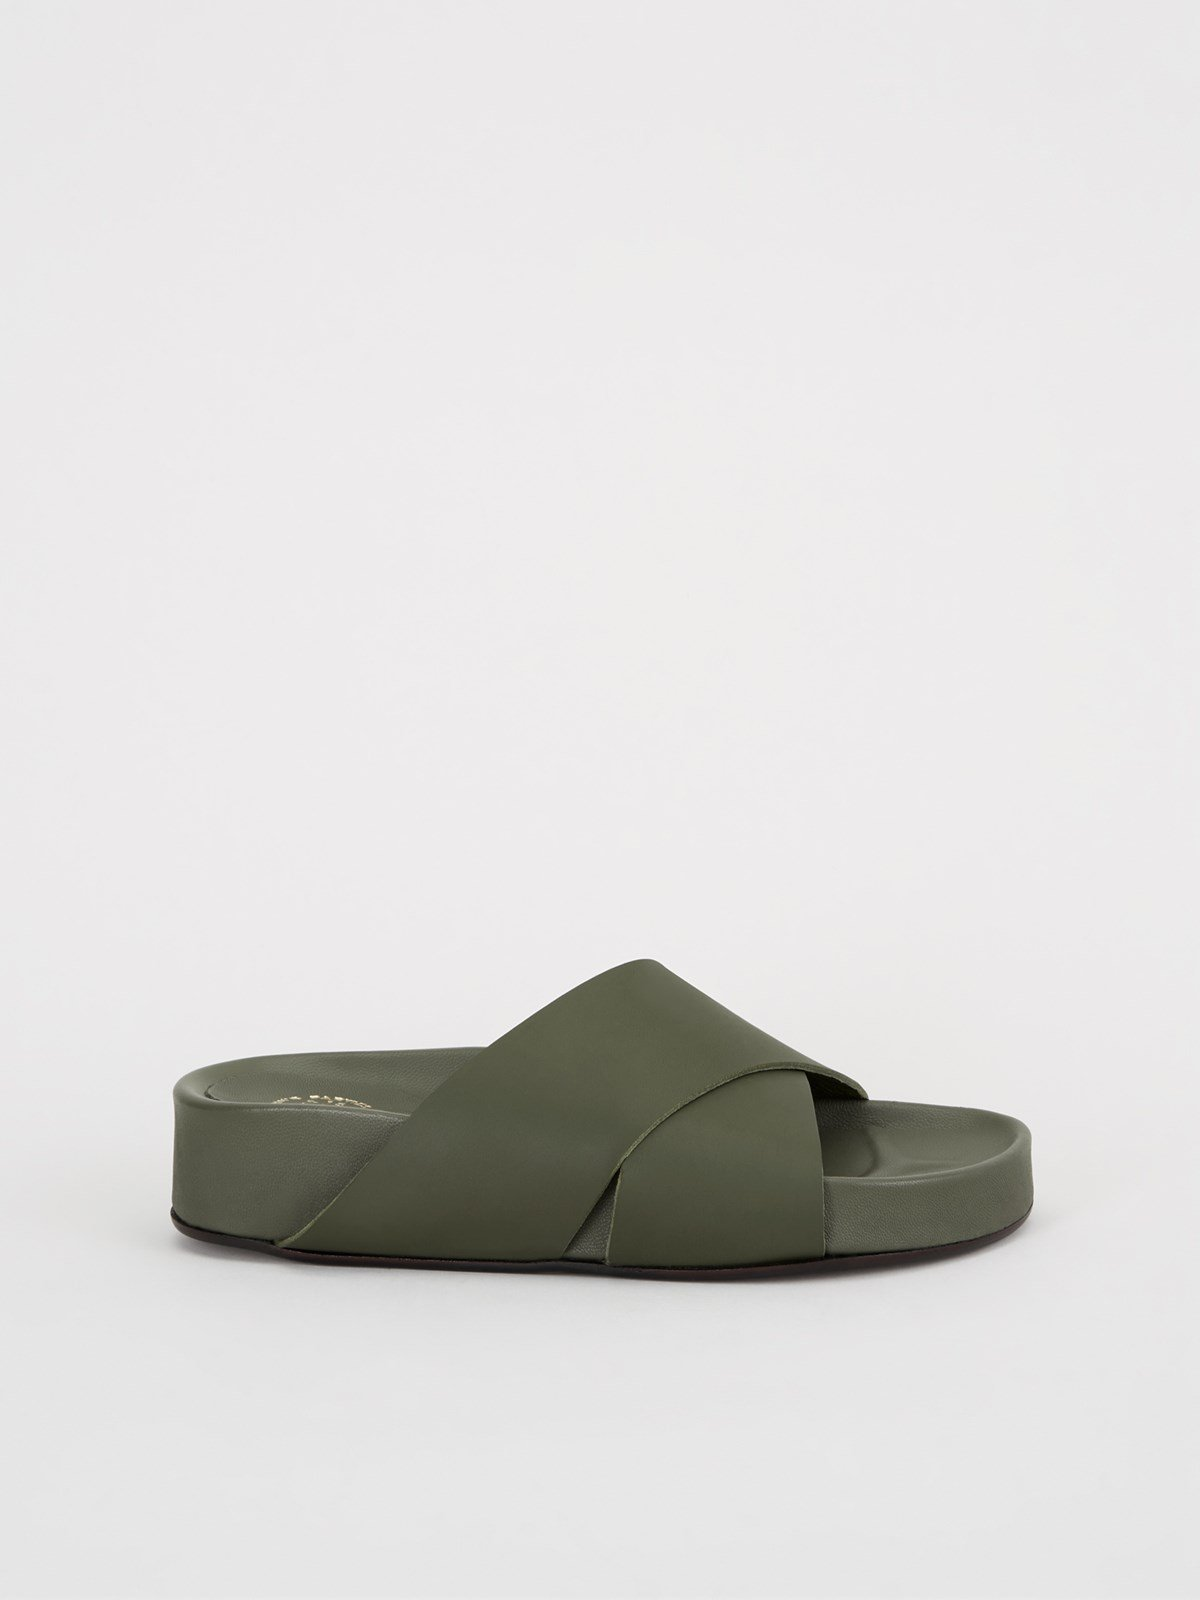 Urbino Turtle Everyday sandals